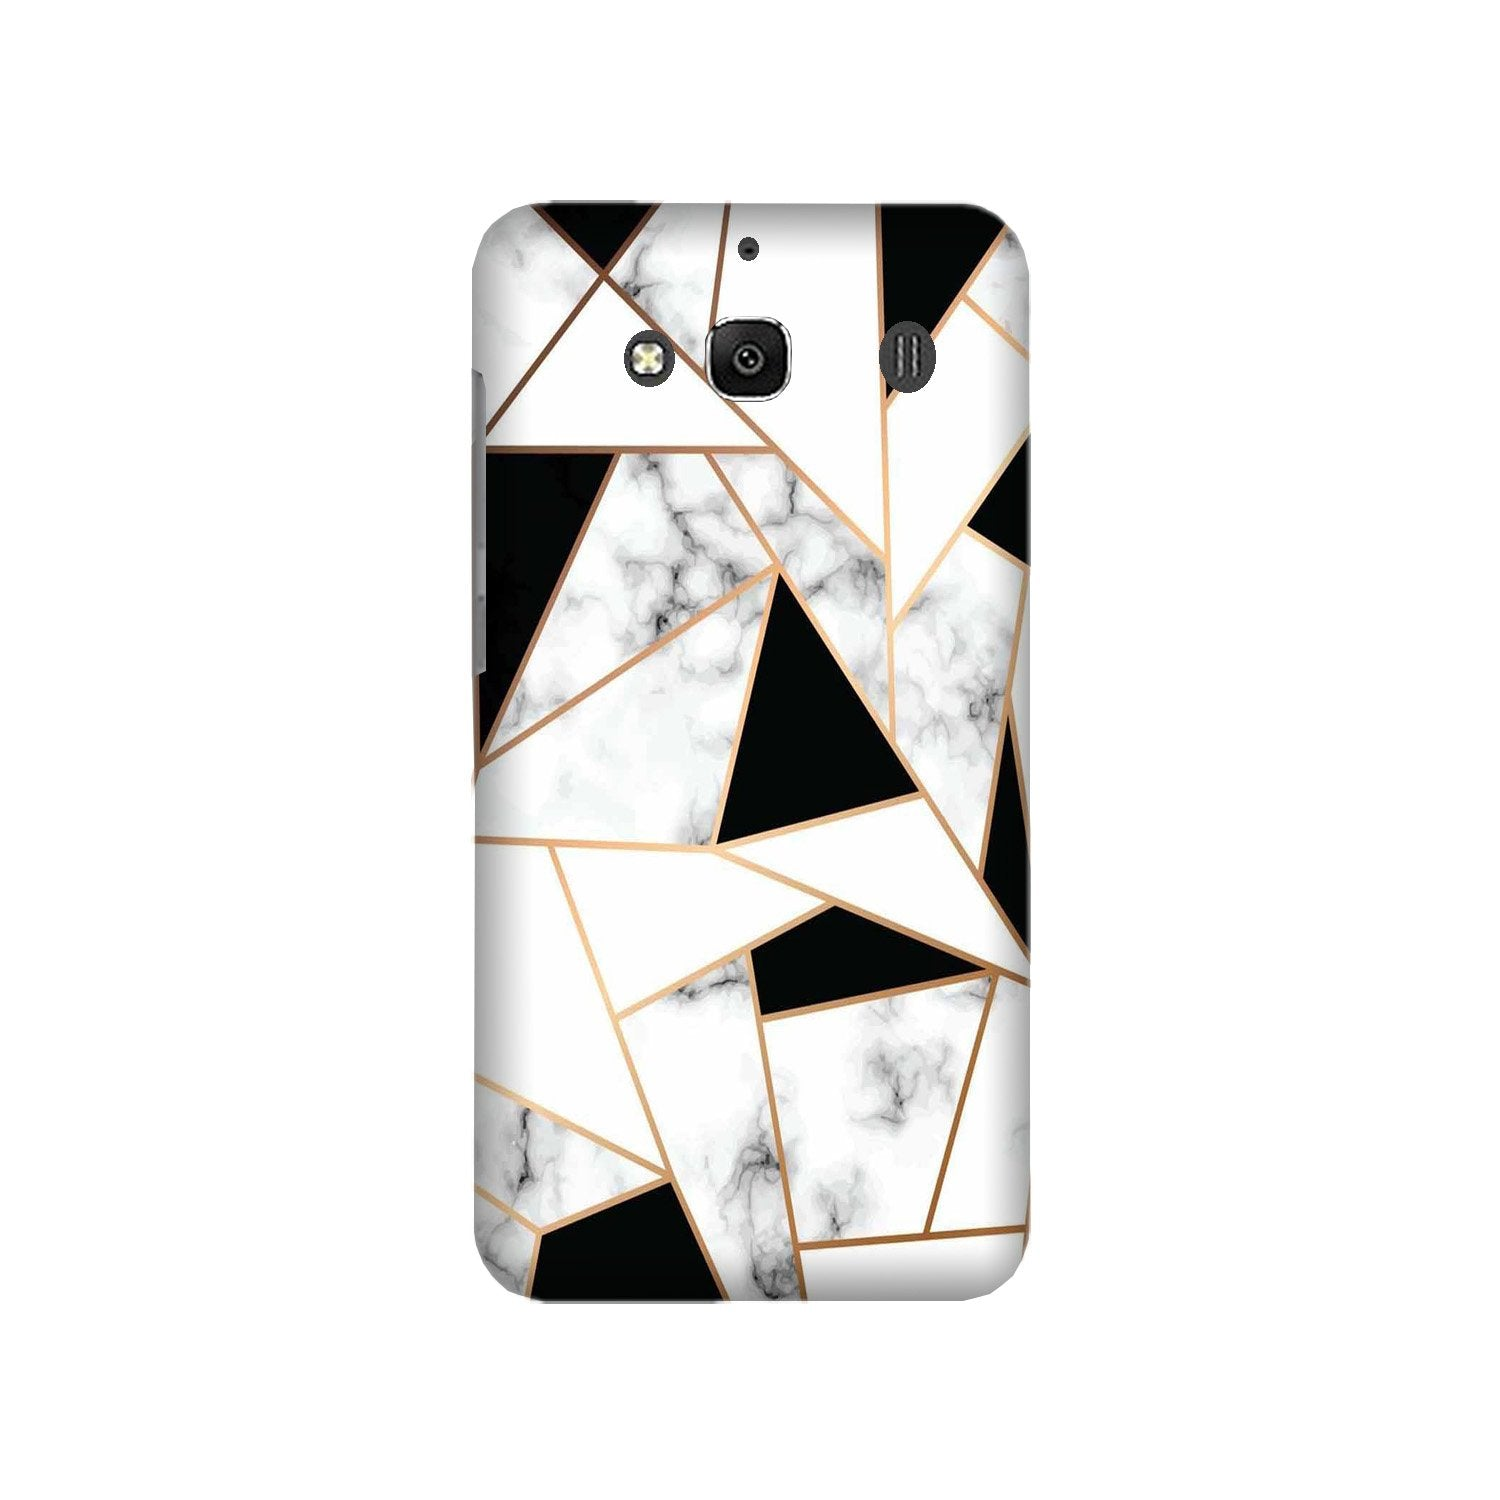 Marble Texture Mobile Back Case for Redmi 2 Prime  (Design - 322)